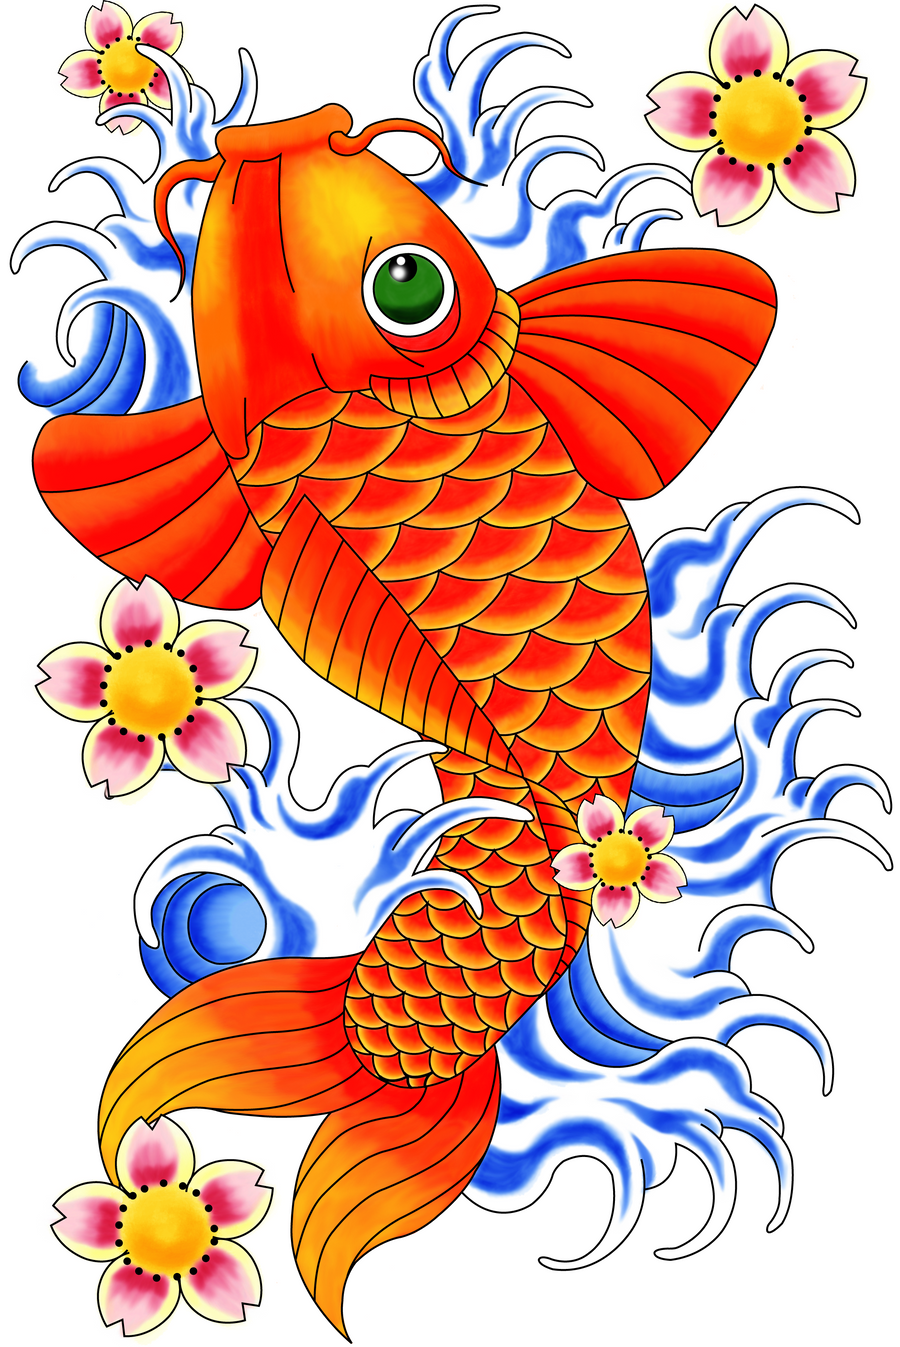 Koi Fish design by peanutbuttermadness on DeviantArt